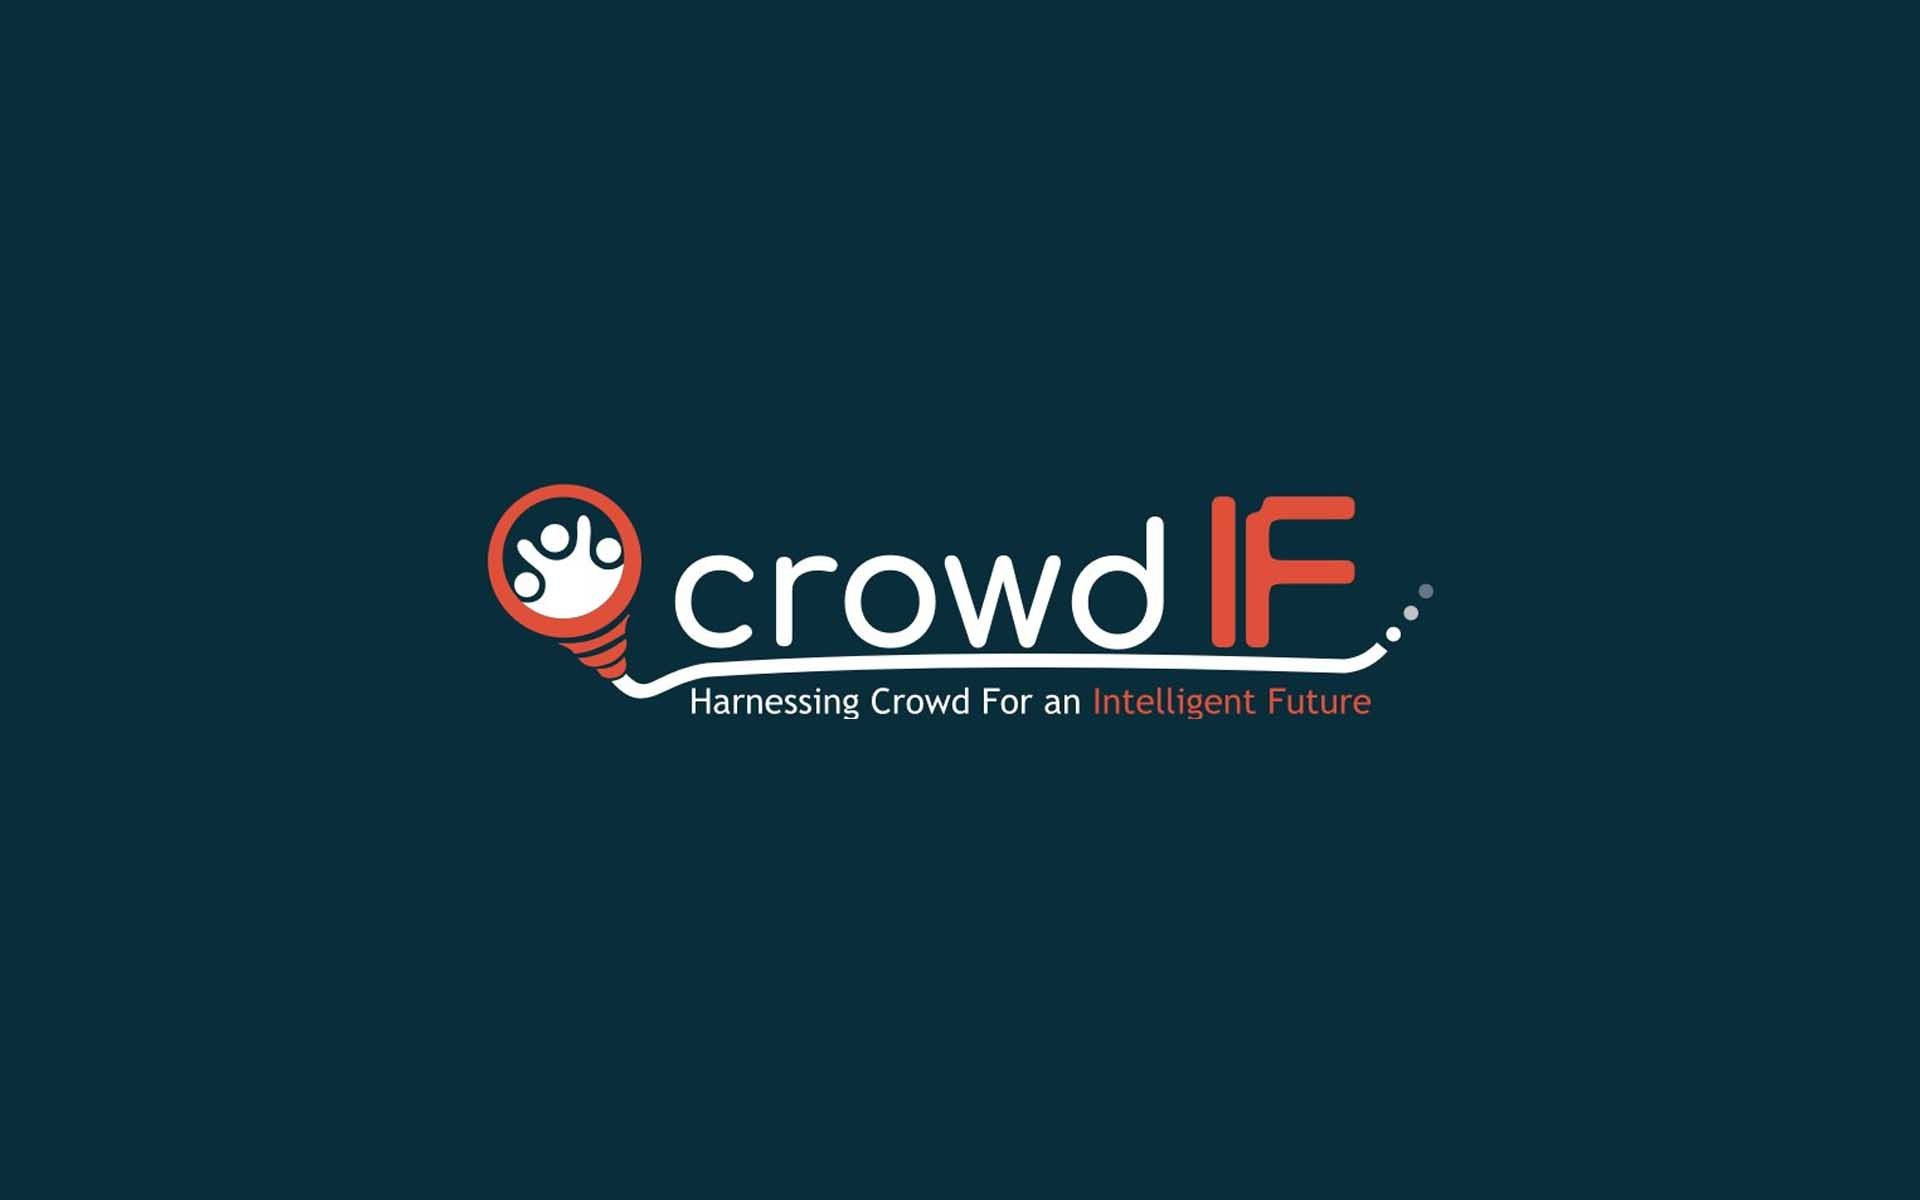 CrowdIF Launches ICO Backed By First Of Its Kind Crypto Trading Platform That Quantifies Market Sentiment & Turns It Into Pure Profit